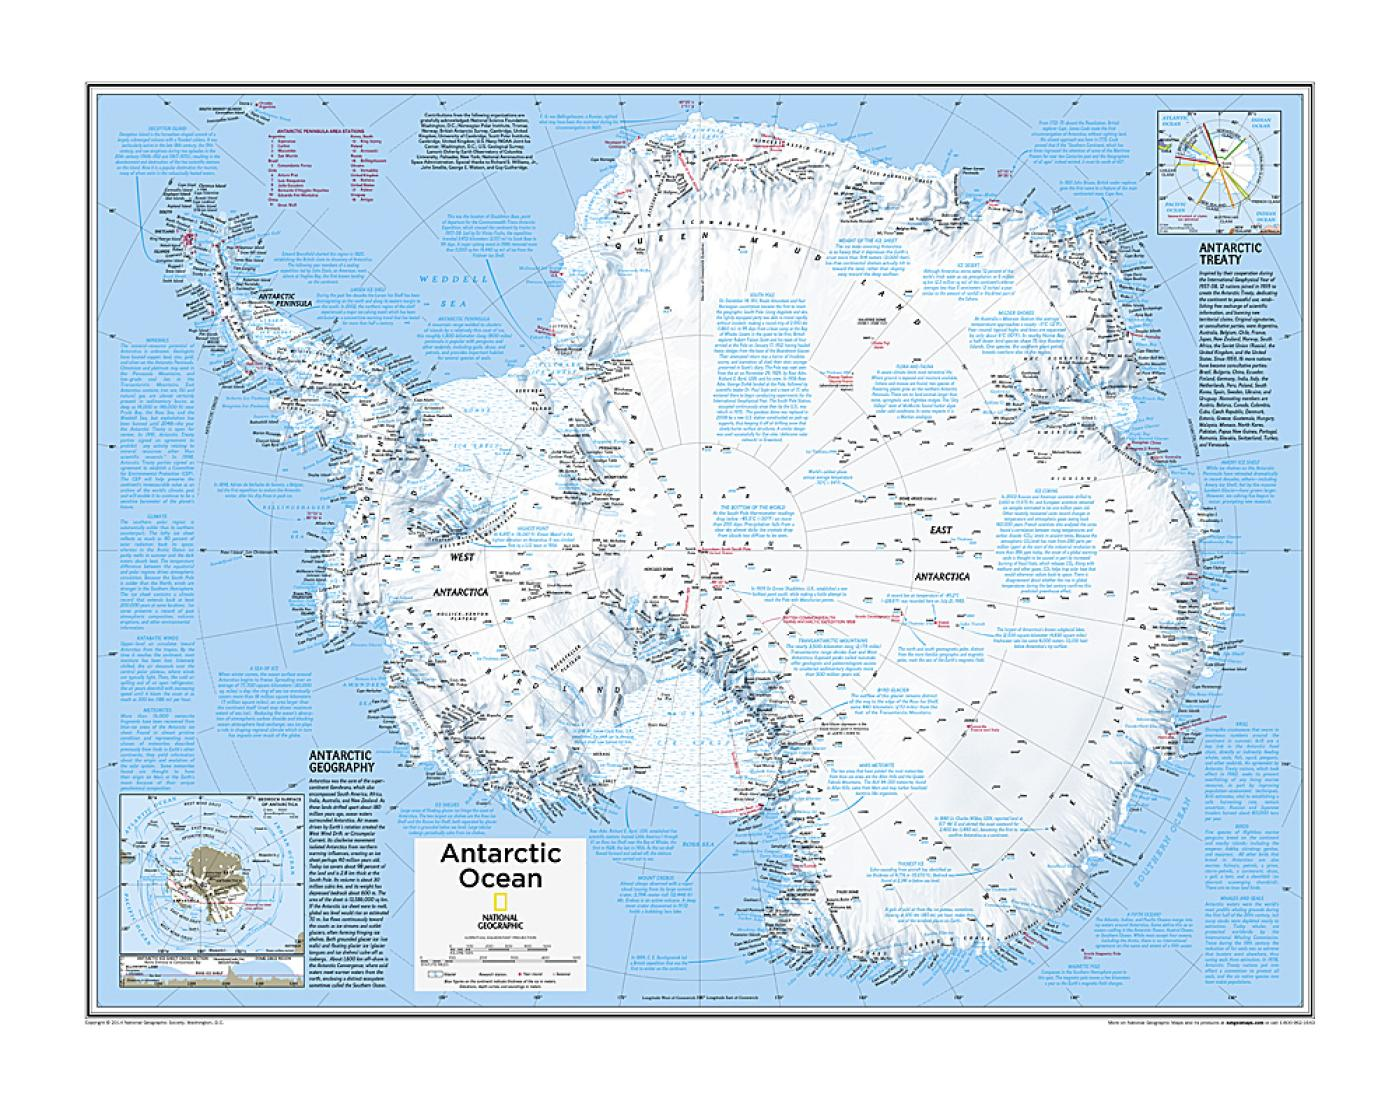 Antarctica Political - Map from National Geographic Atlas of the World on topographical map, geologic map, genetic map, topological map, maps map, personal map, business map, geographical map, statistical map, world map, physical map, early world maps, physical geography, science map, aerial photography, geographic information system, geographic coordinate system, human geography, egypt map, weather map, topographic map, costa blanca spain map, history map, spatial analysis, earth remote sensing, national map, thematic map, international map, map projection, contour line,